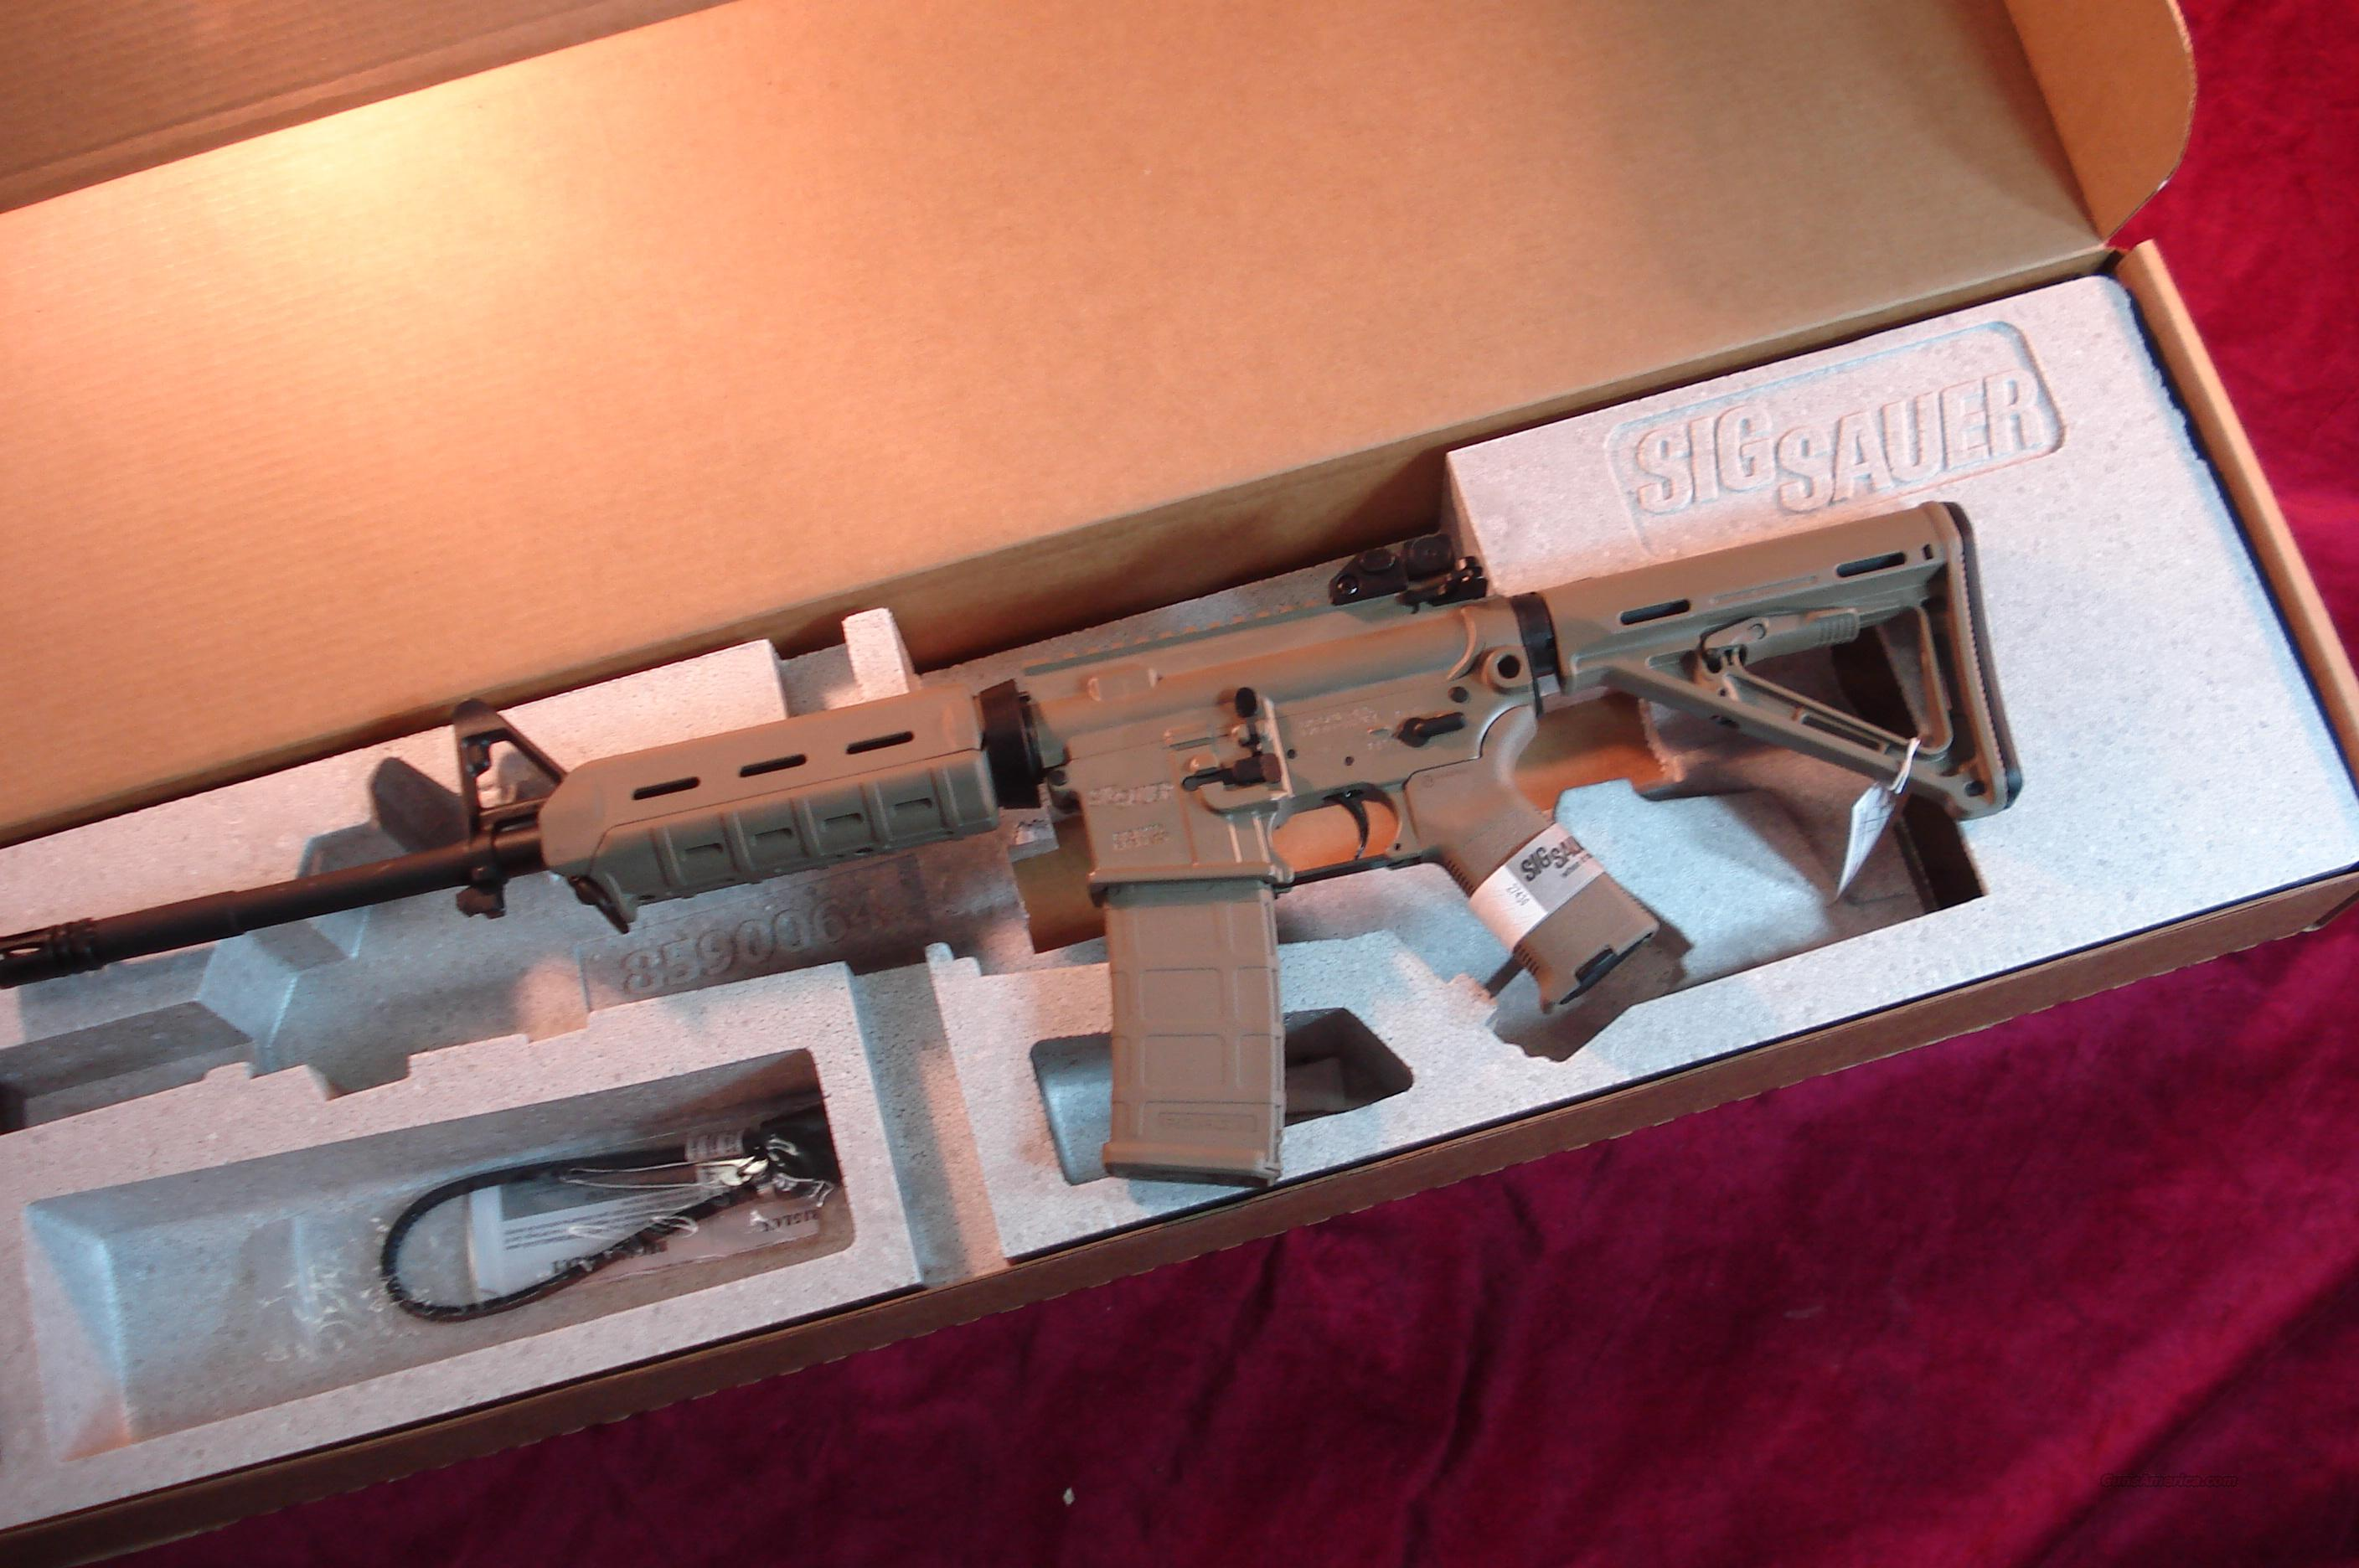 SIG SAUER M400 ENHANCED FLAT DARK EARTH AR-15 5.56/223 CAL NEW  Guns > Rifles > Sig - Sauer/Sigarms Rifles